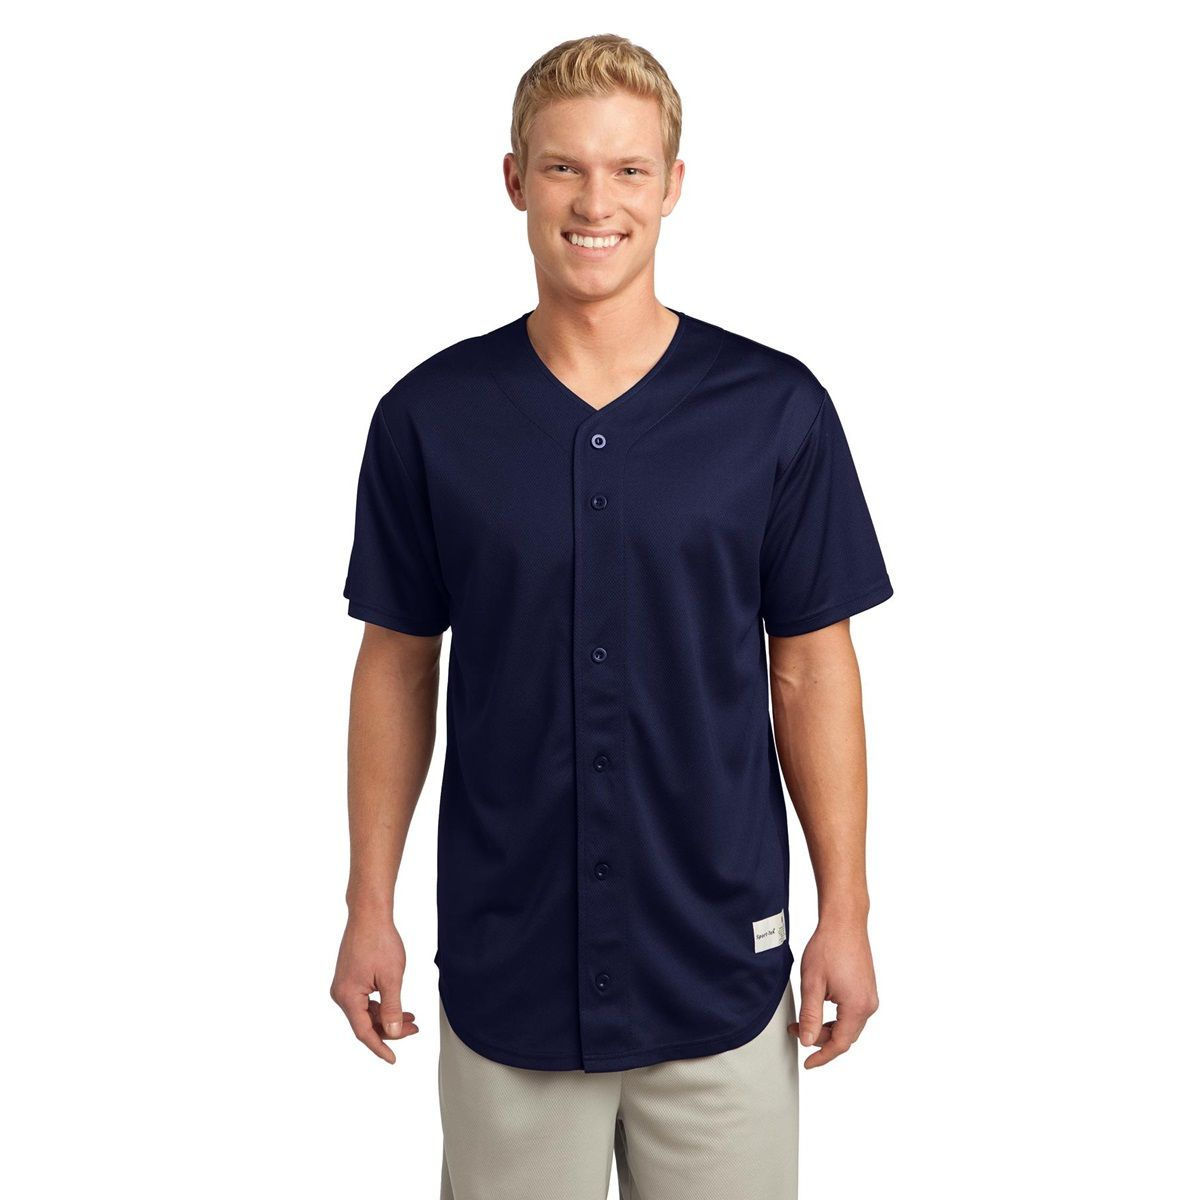 Sport-Tek ST220 PosiCharge Tough Mesh Full-Button Jersey T-Shirt - True Navy - With buttons placed for ease of embellishment, this classic jersey scores with its durable (yet soft and smooth) PosiCharge Tough Mesh. | FullSource.com